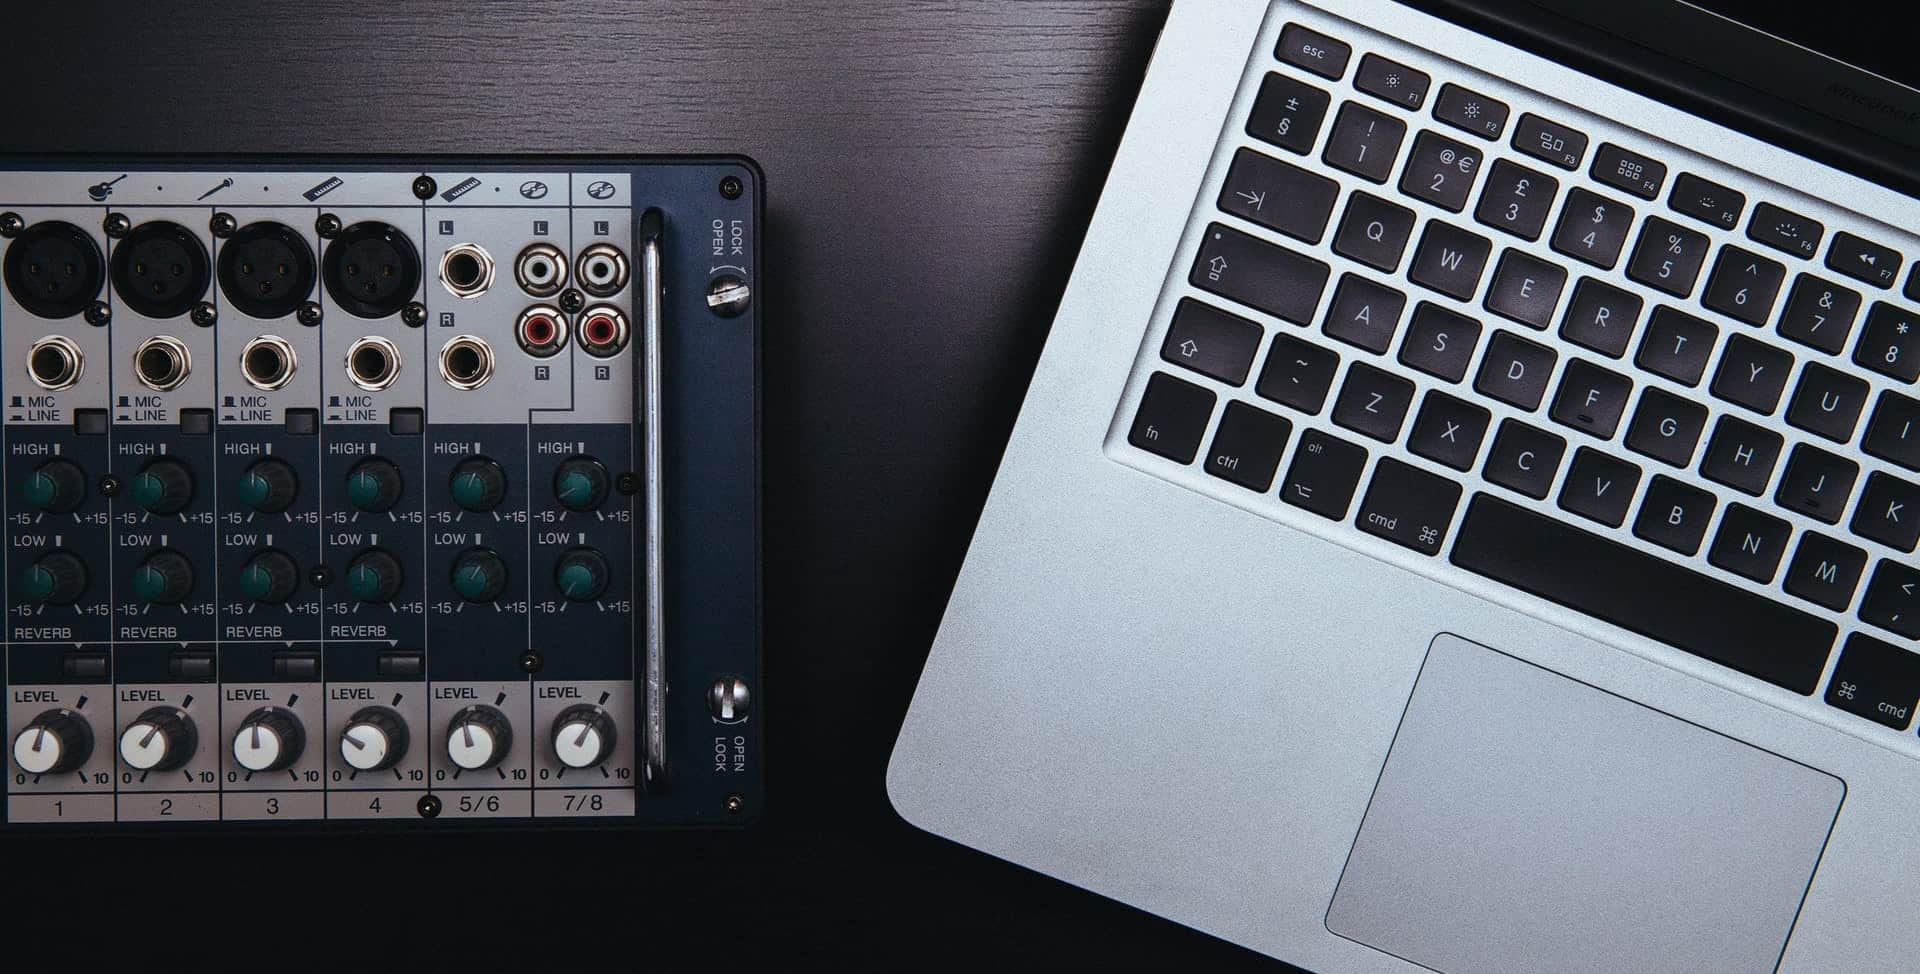 Best Royalty Free Music Sites? - Top 7 License Services (2019)